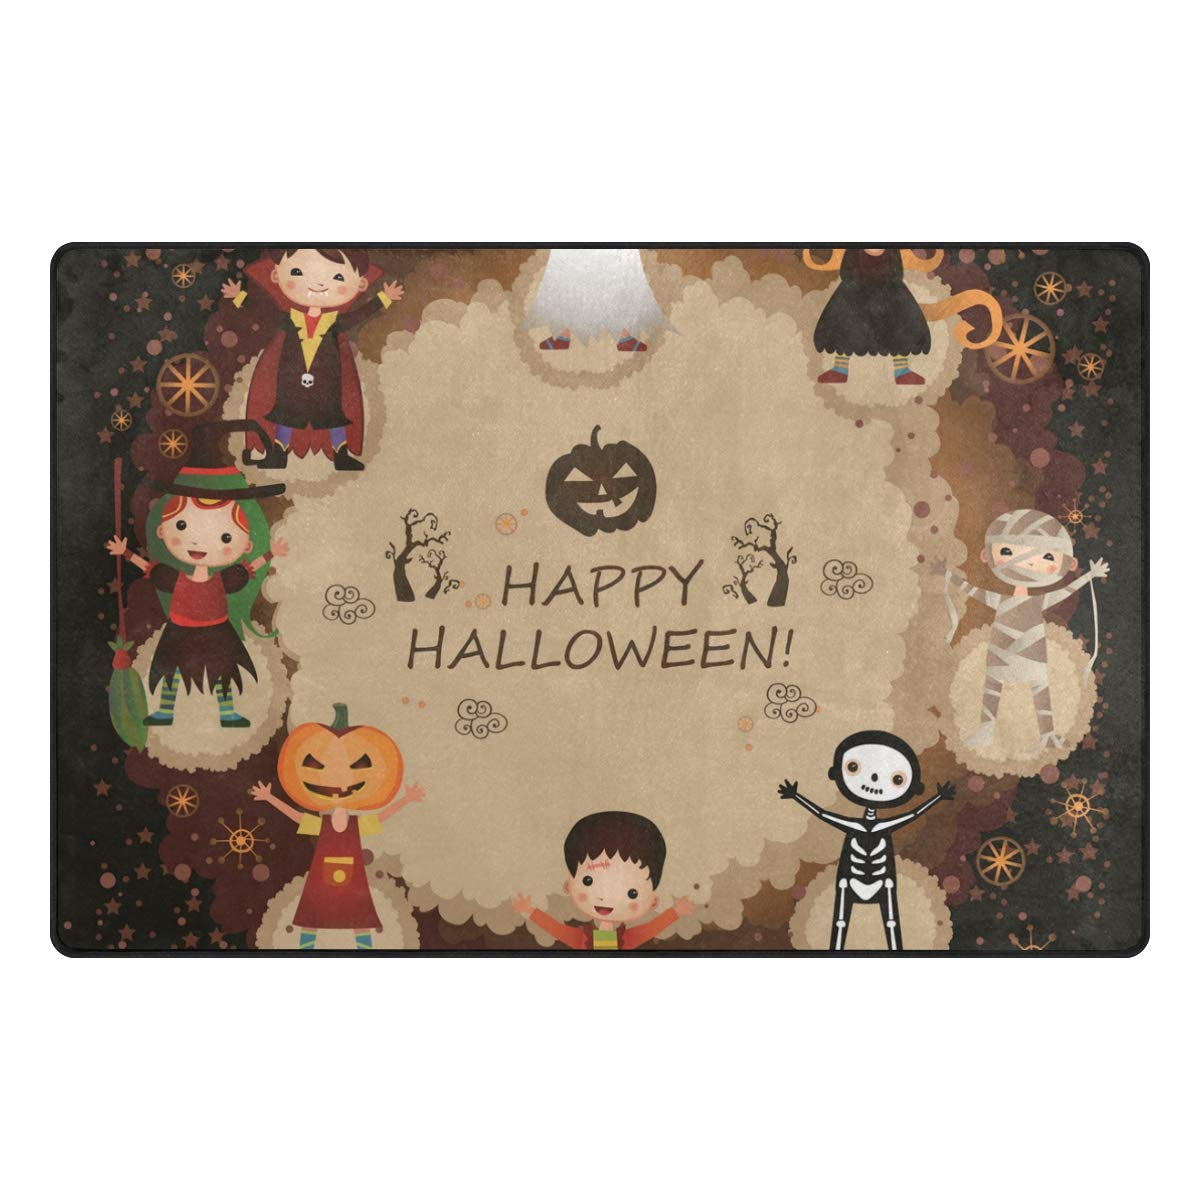 HEOEH Skeleton Pumpkin Witch Dance Doormats Area Rug Rugs Non-Slip Floor Mat Indoor Outdoor 60x39 inch